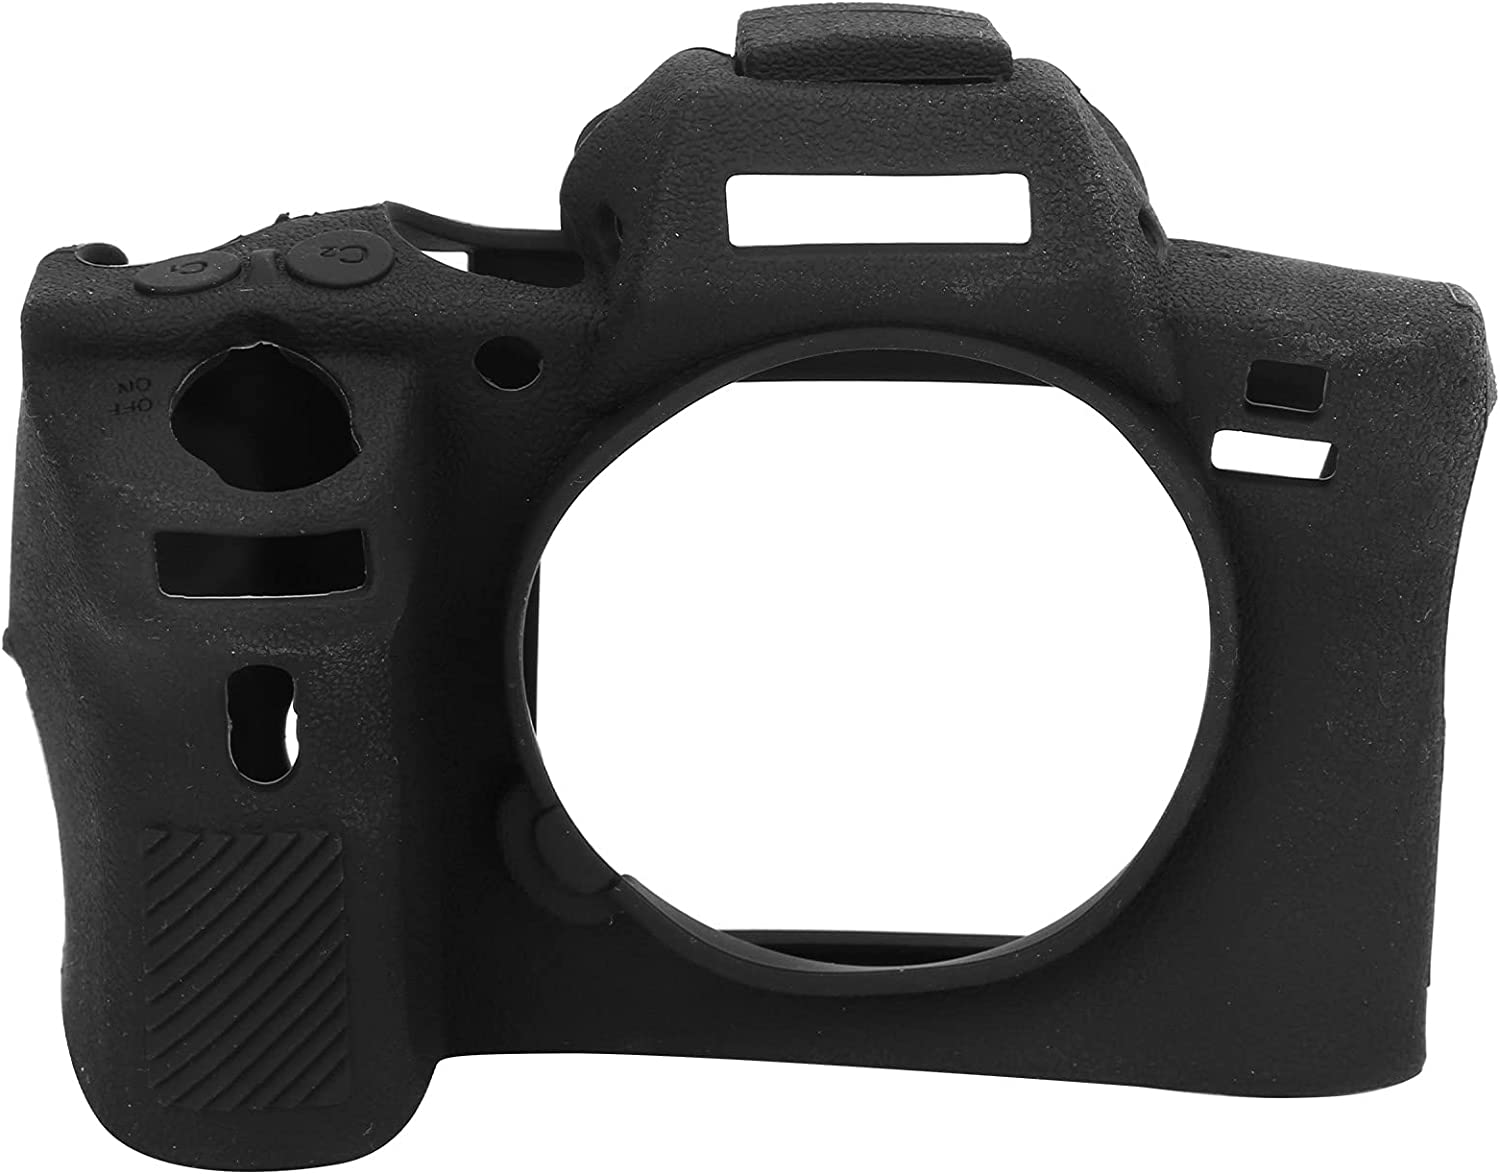 Dedication Sale price YIUS Silicone Protective Housing Camera Cover Body fo Case Shell